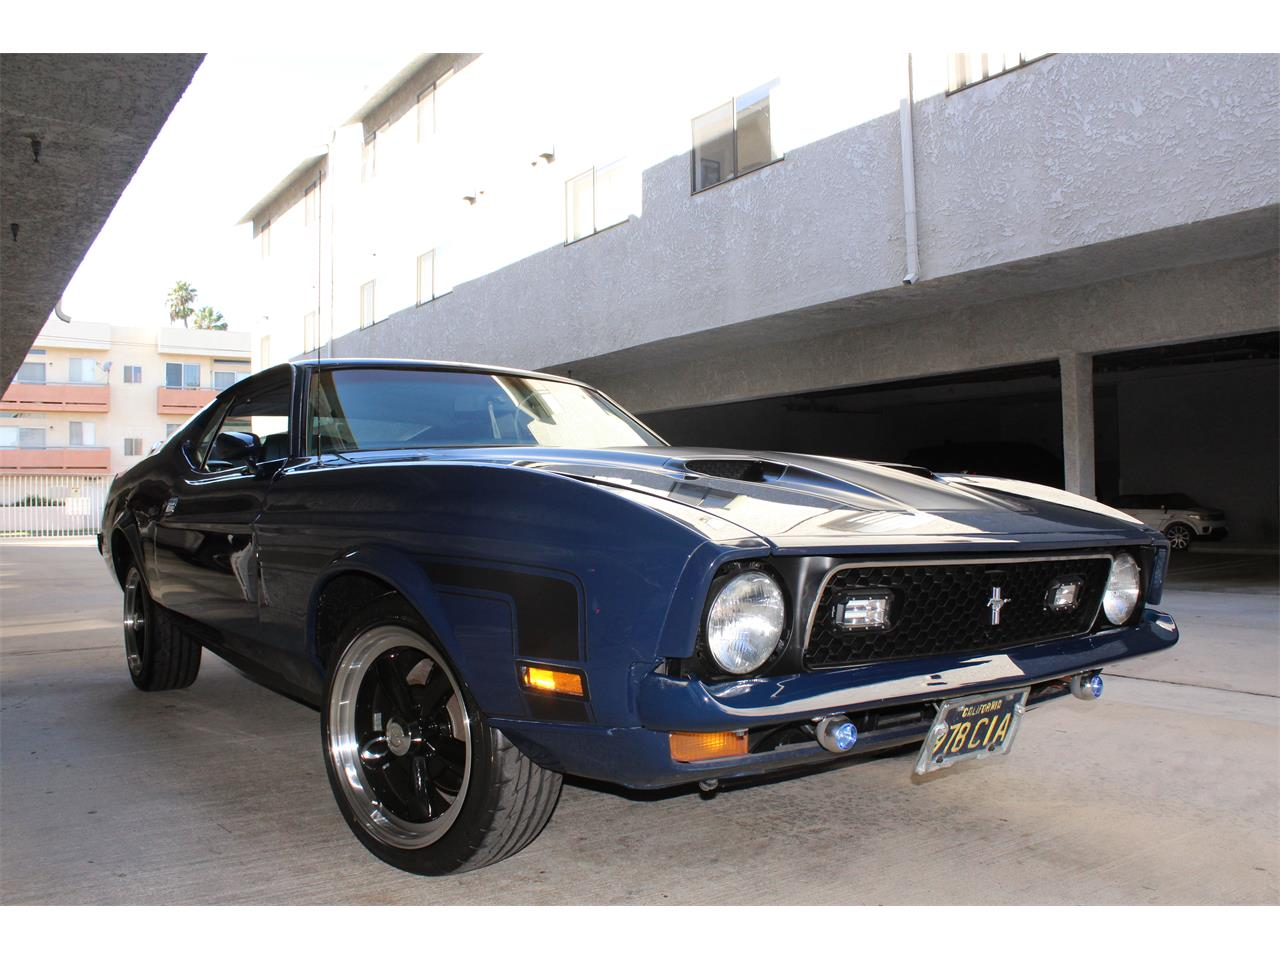 1971 Ford Mustang Mach 1 (CC-1237100) for sale in Sherman Oaks, California